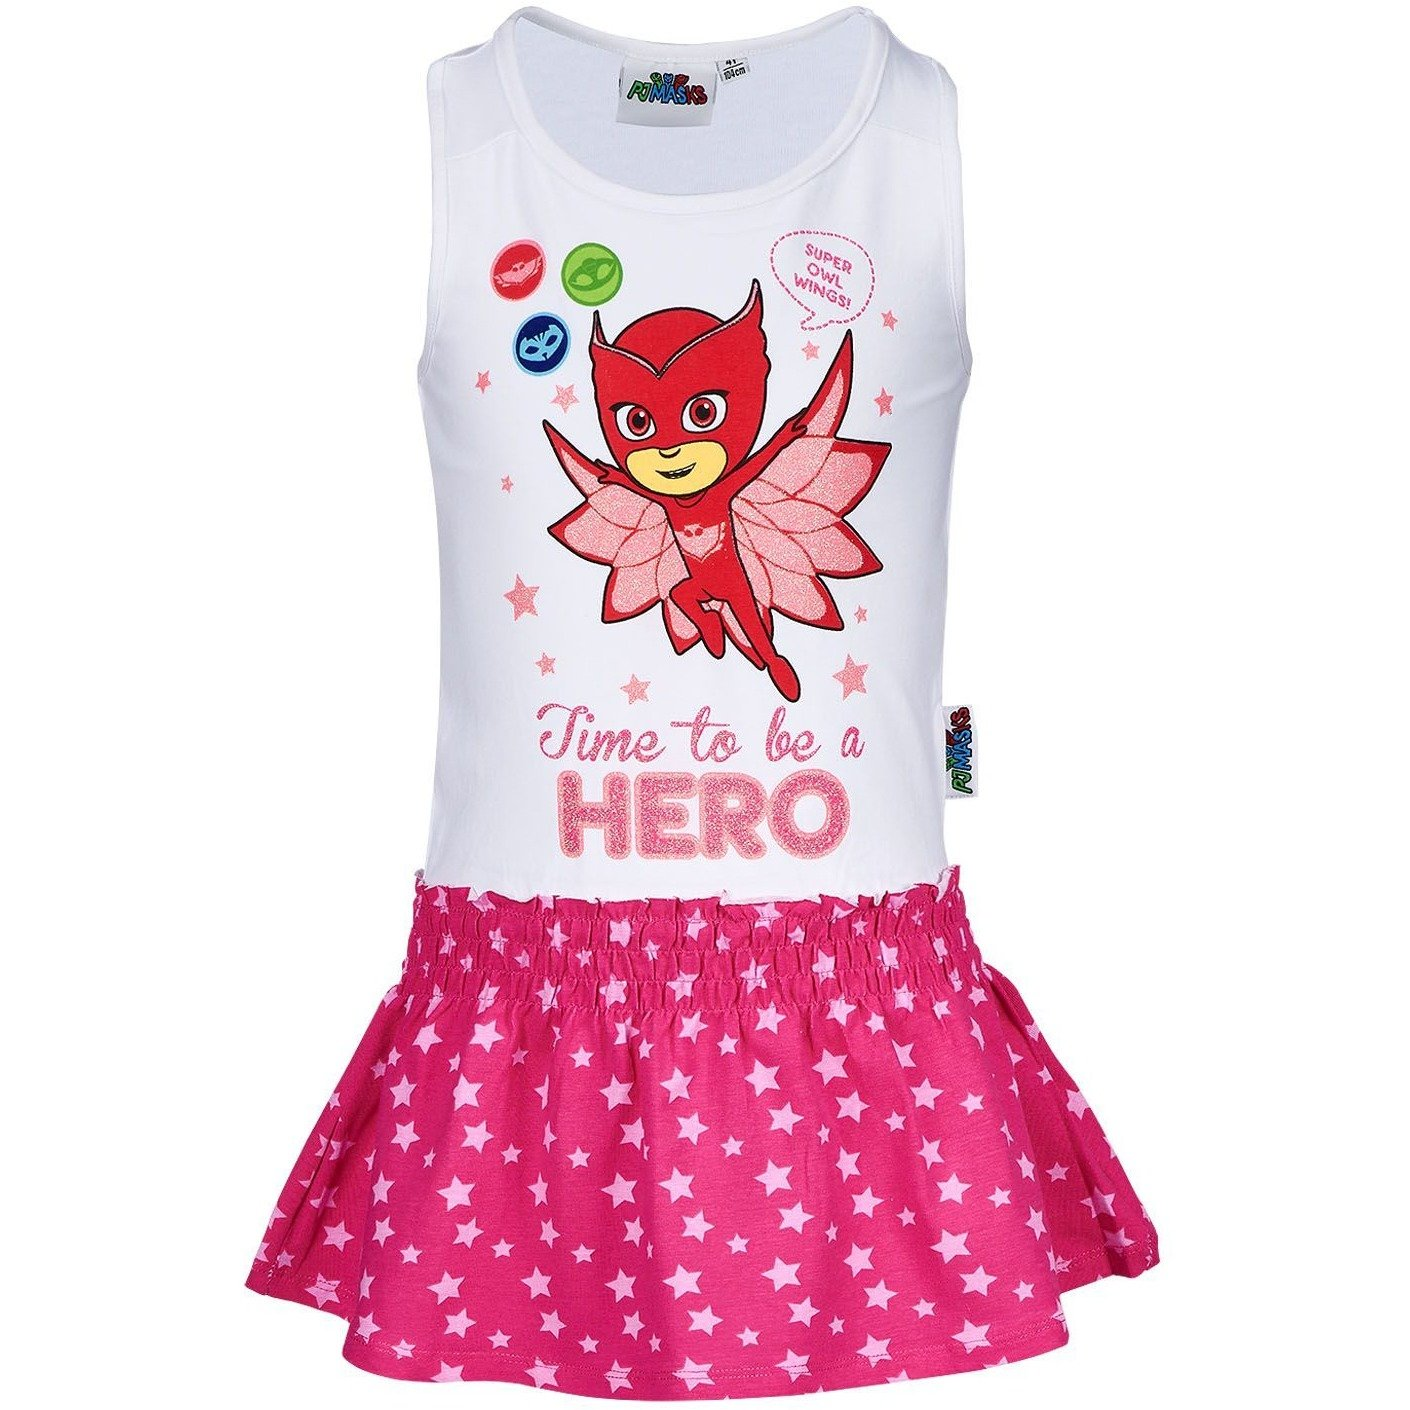 girls-pj-masks-dress-white-full-22767